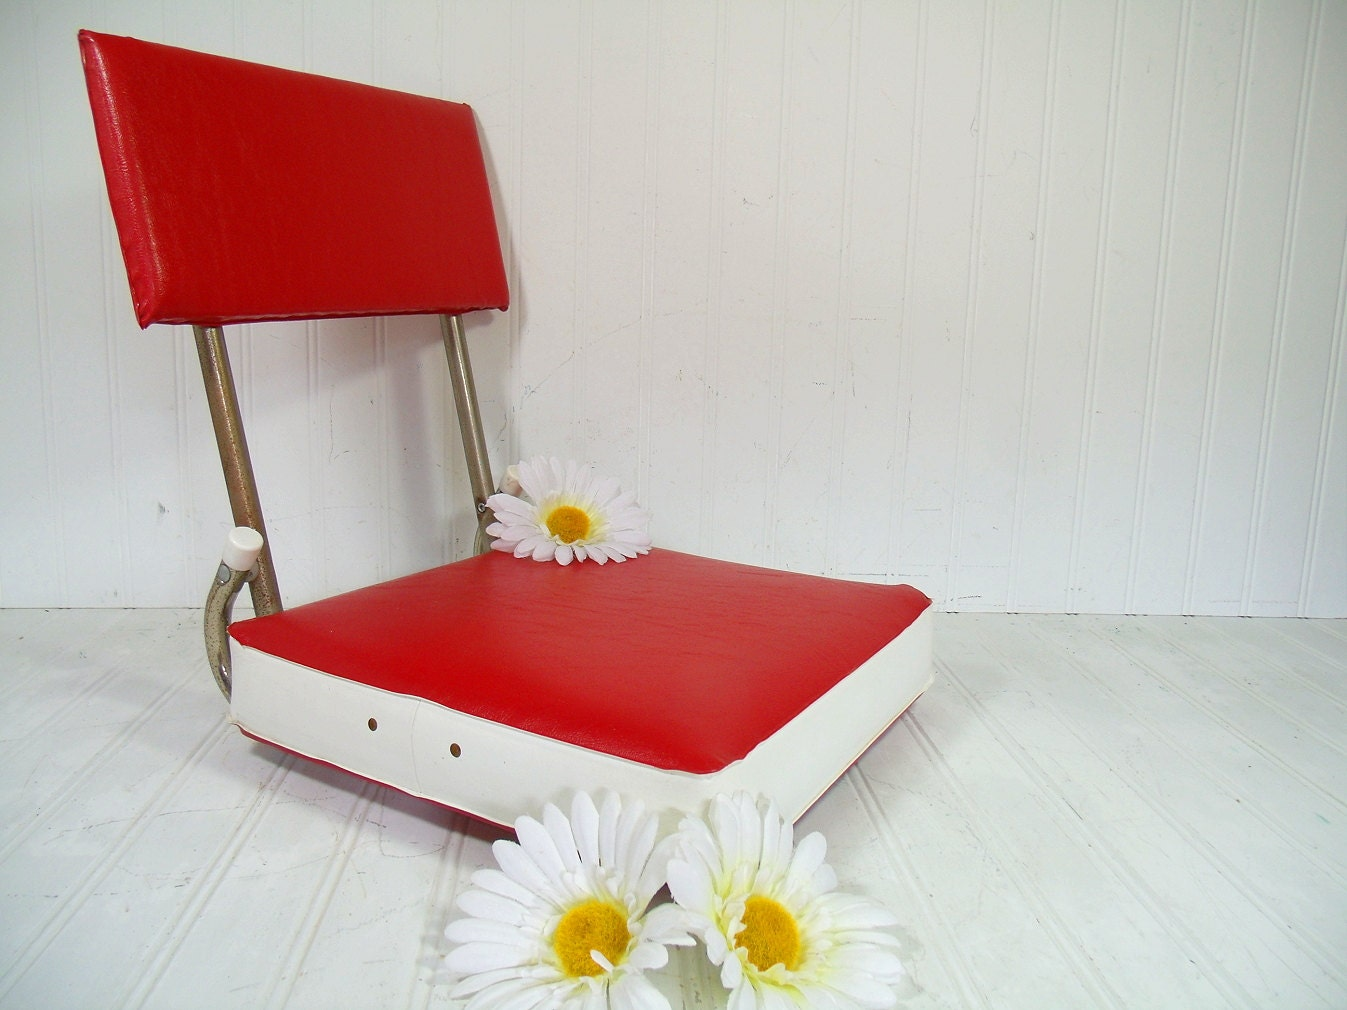 Stadium Booster Seat Red Amp White Padded Cushion Vintage